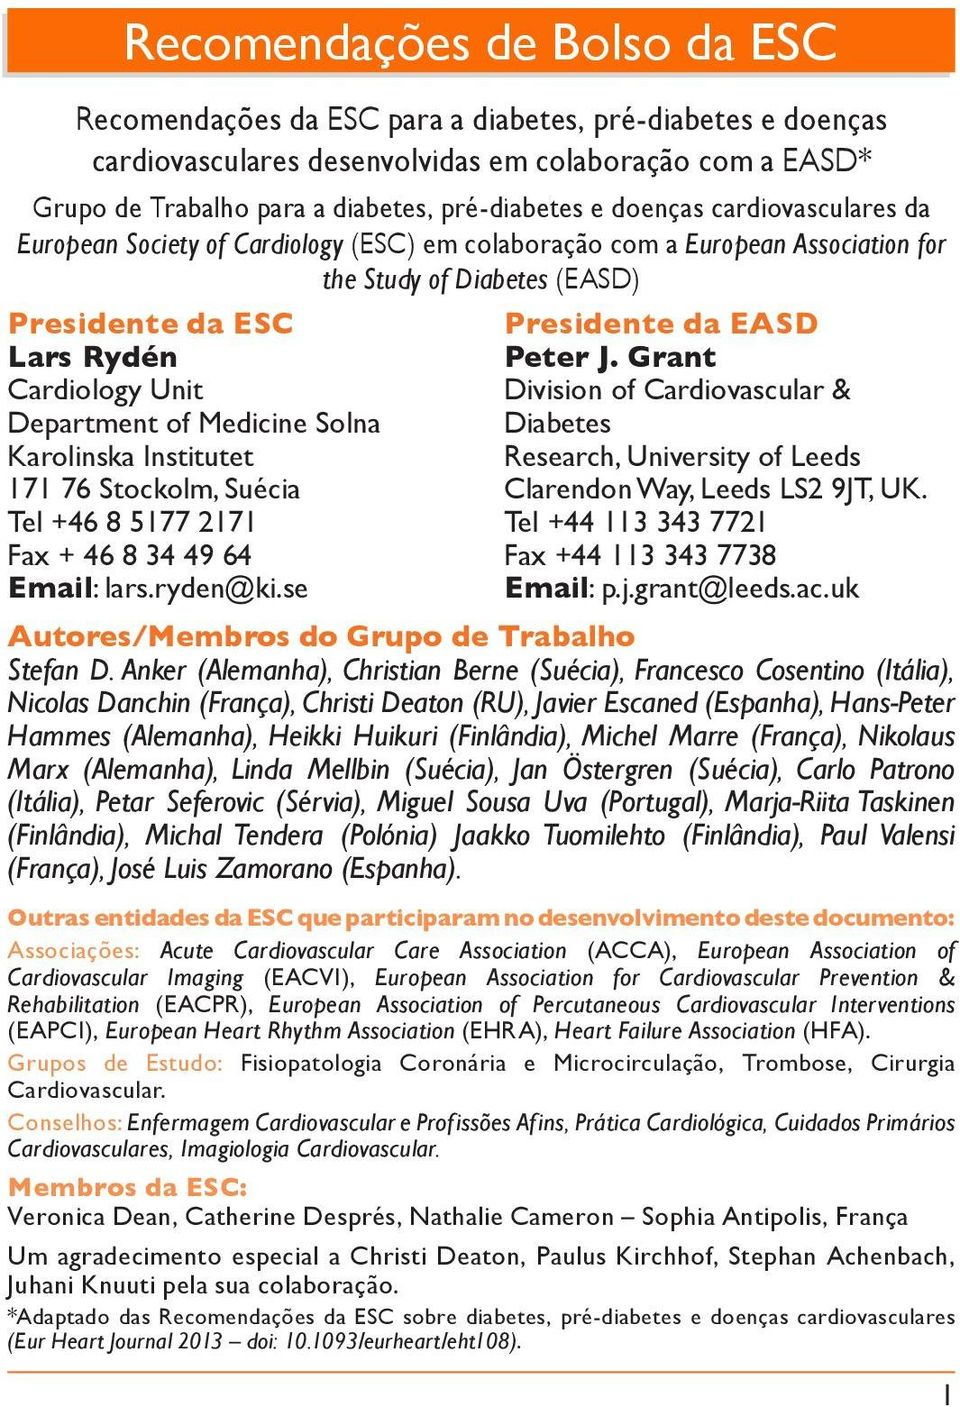 diseases of da European Society the of Cardiology European Society (ESC) em of Cardiology colaboração (ESC) com and a working European ssociation for in collaboration with the the European Study of